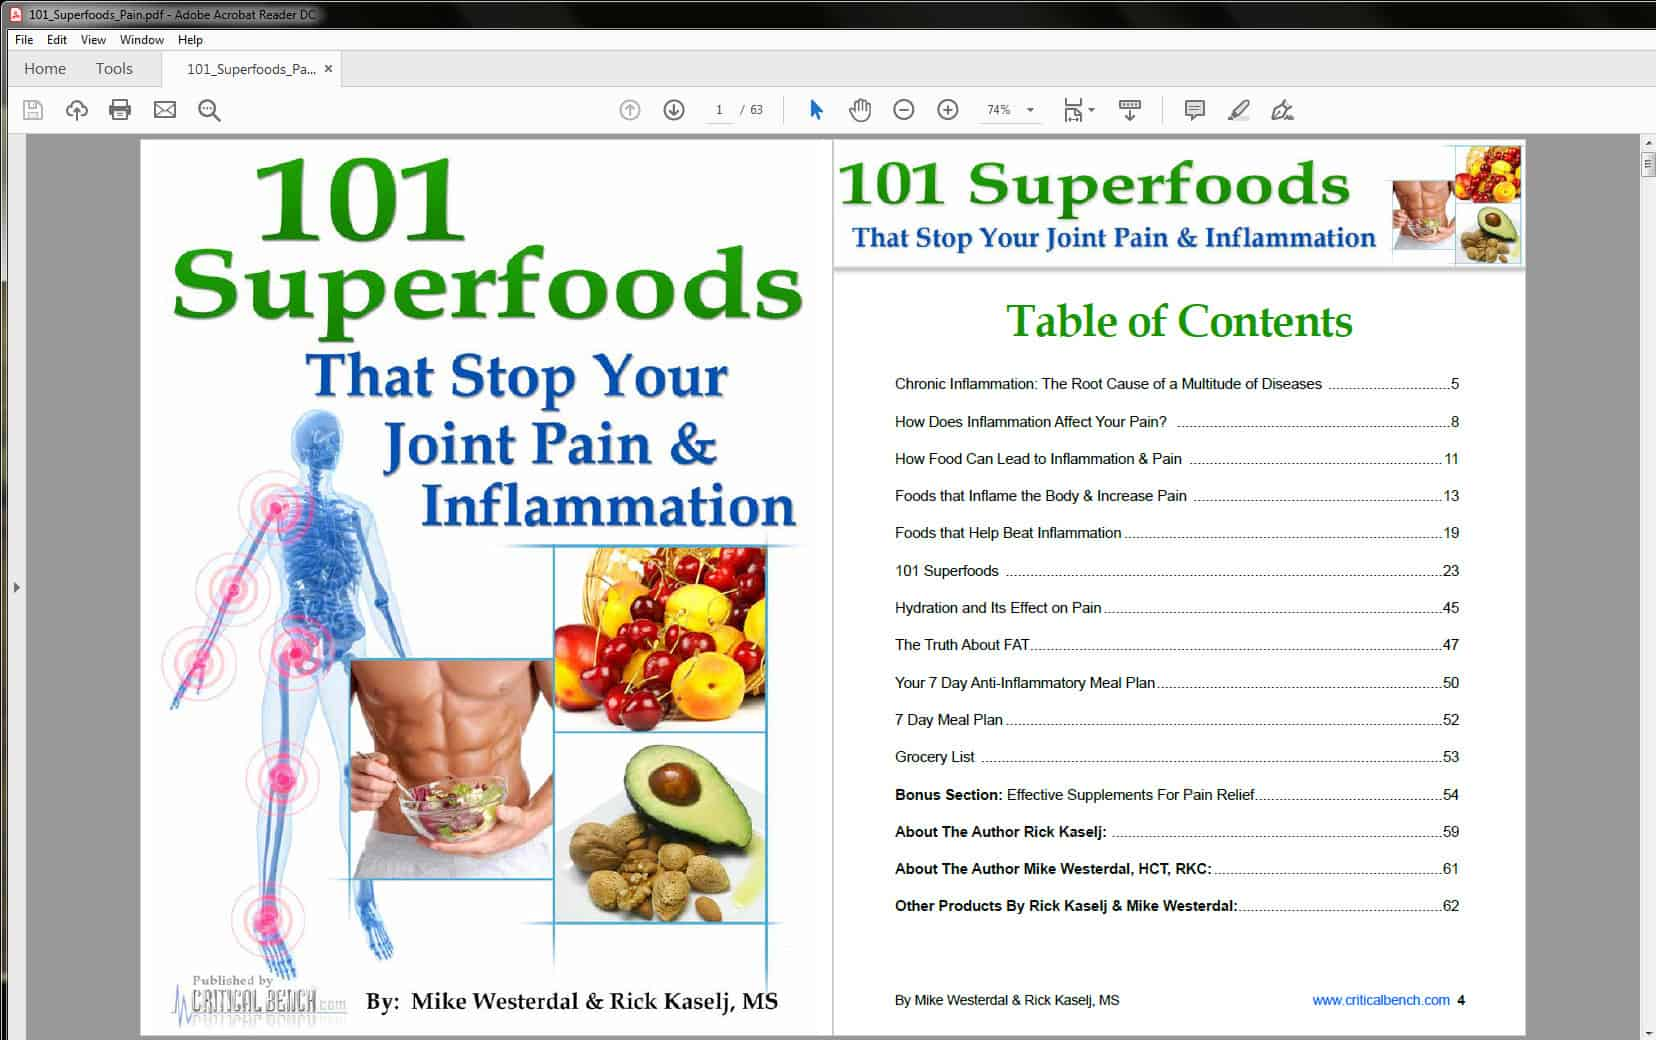 101 Superfoods that Stop Your Joint Pain & Inflammation Table of Contents